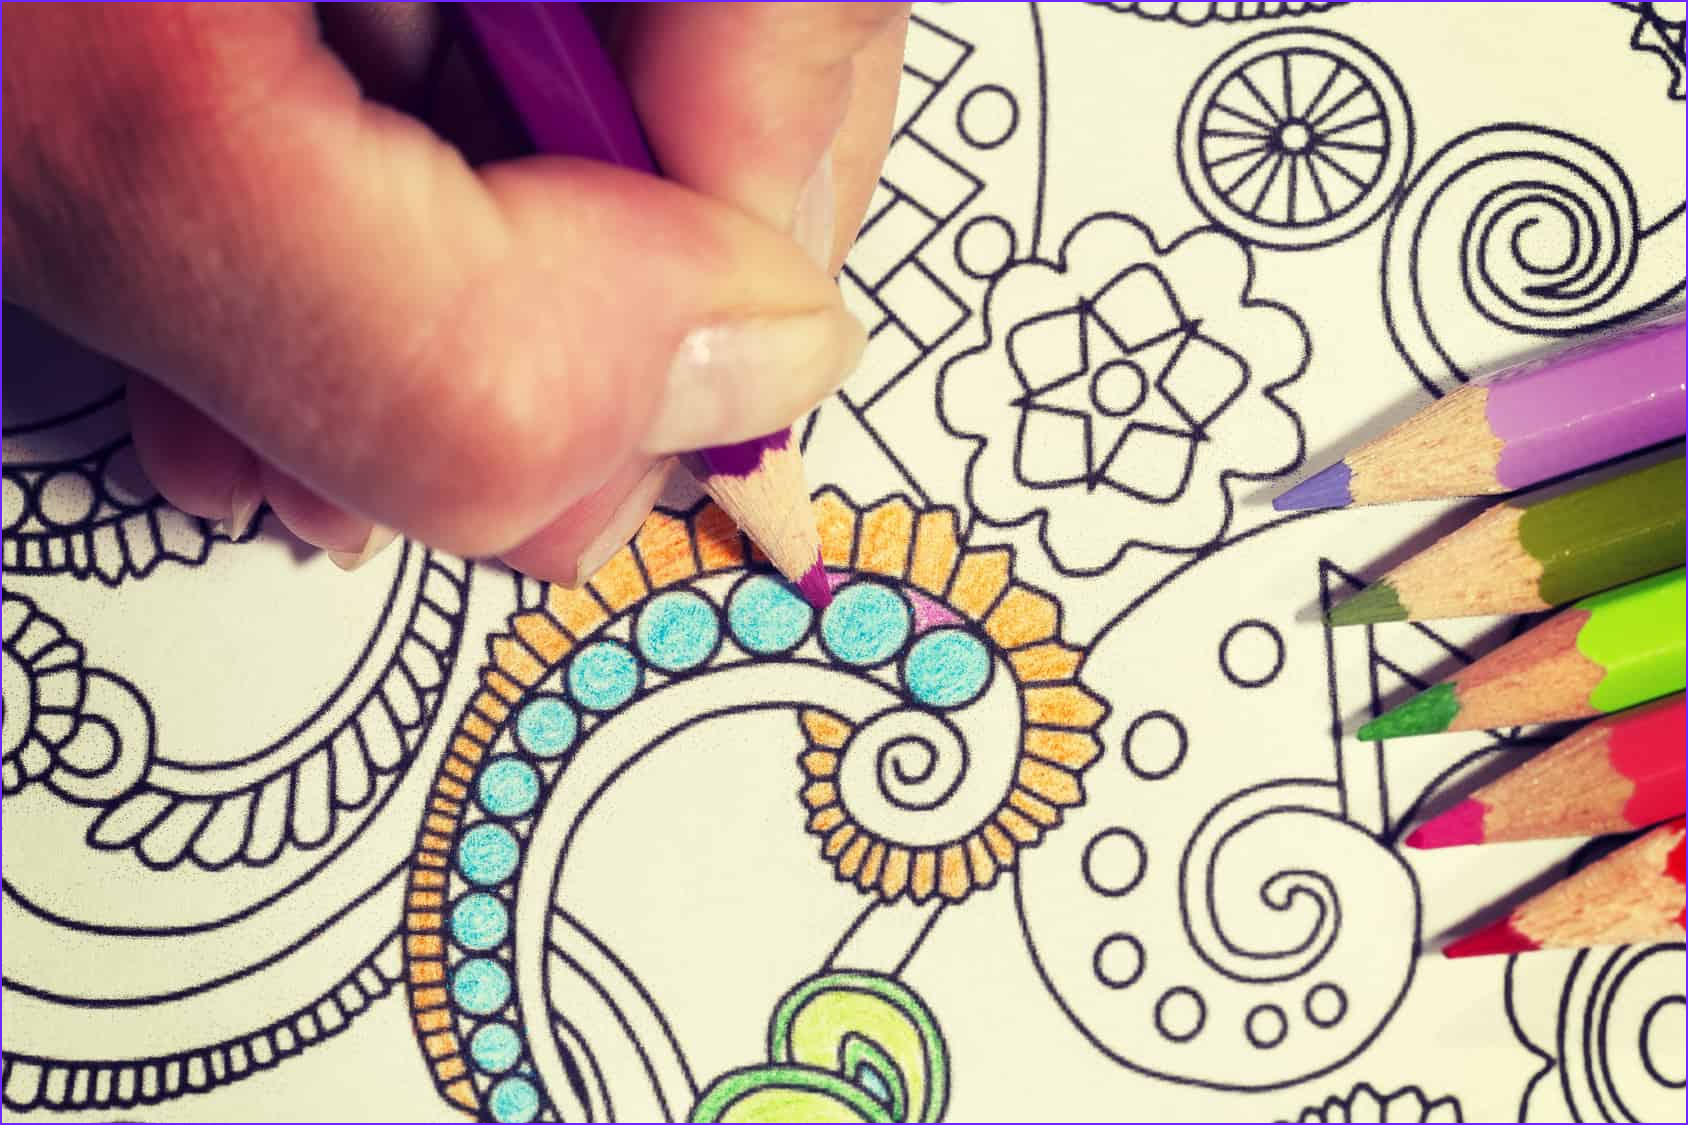 Coloring Stress Unique Images these Printable Abstract Coloring Pages Relieve Stress and